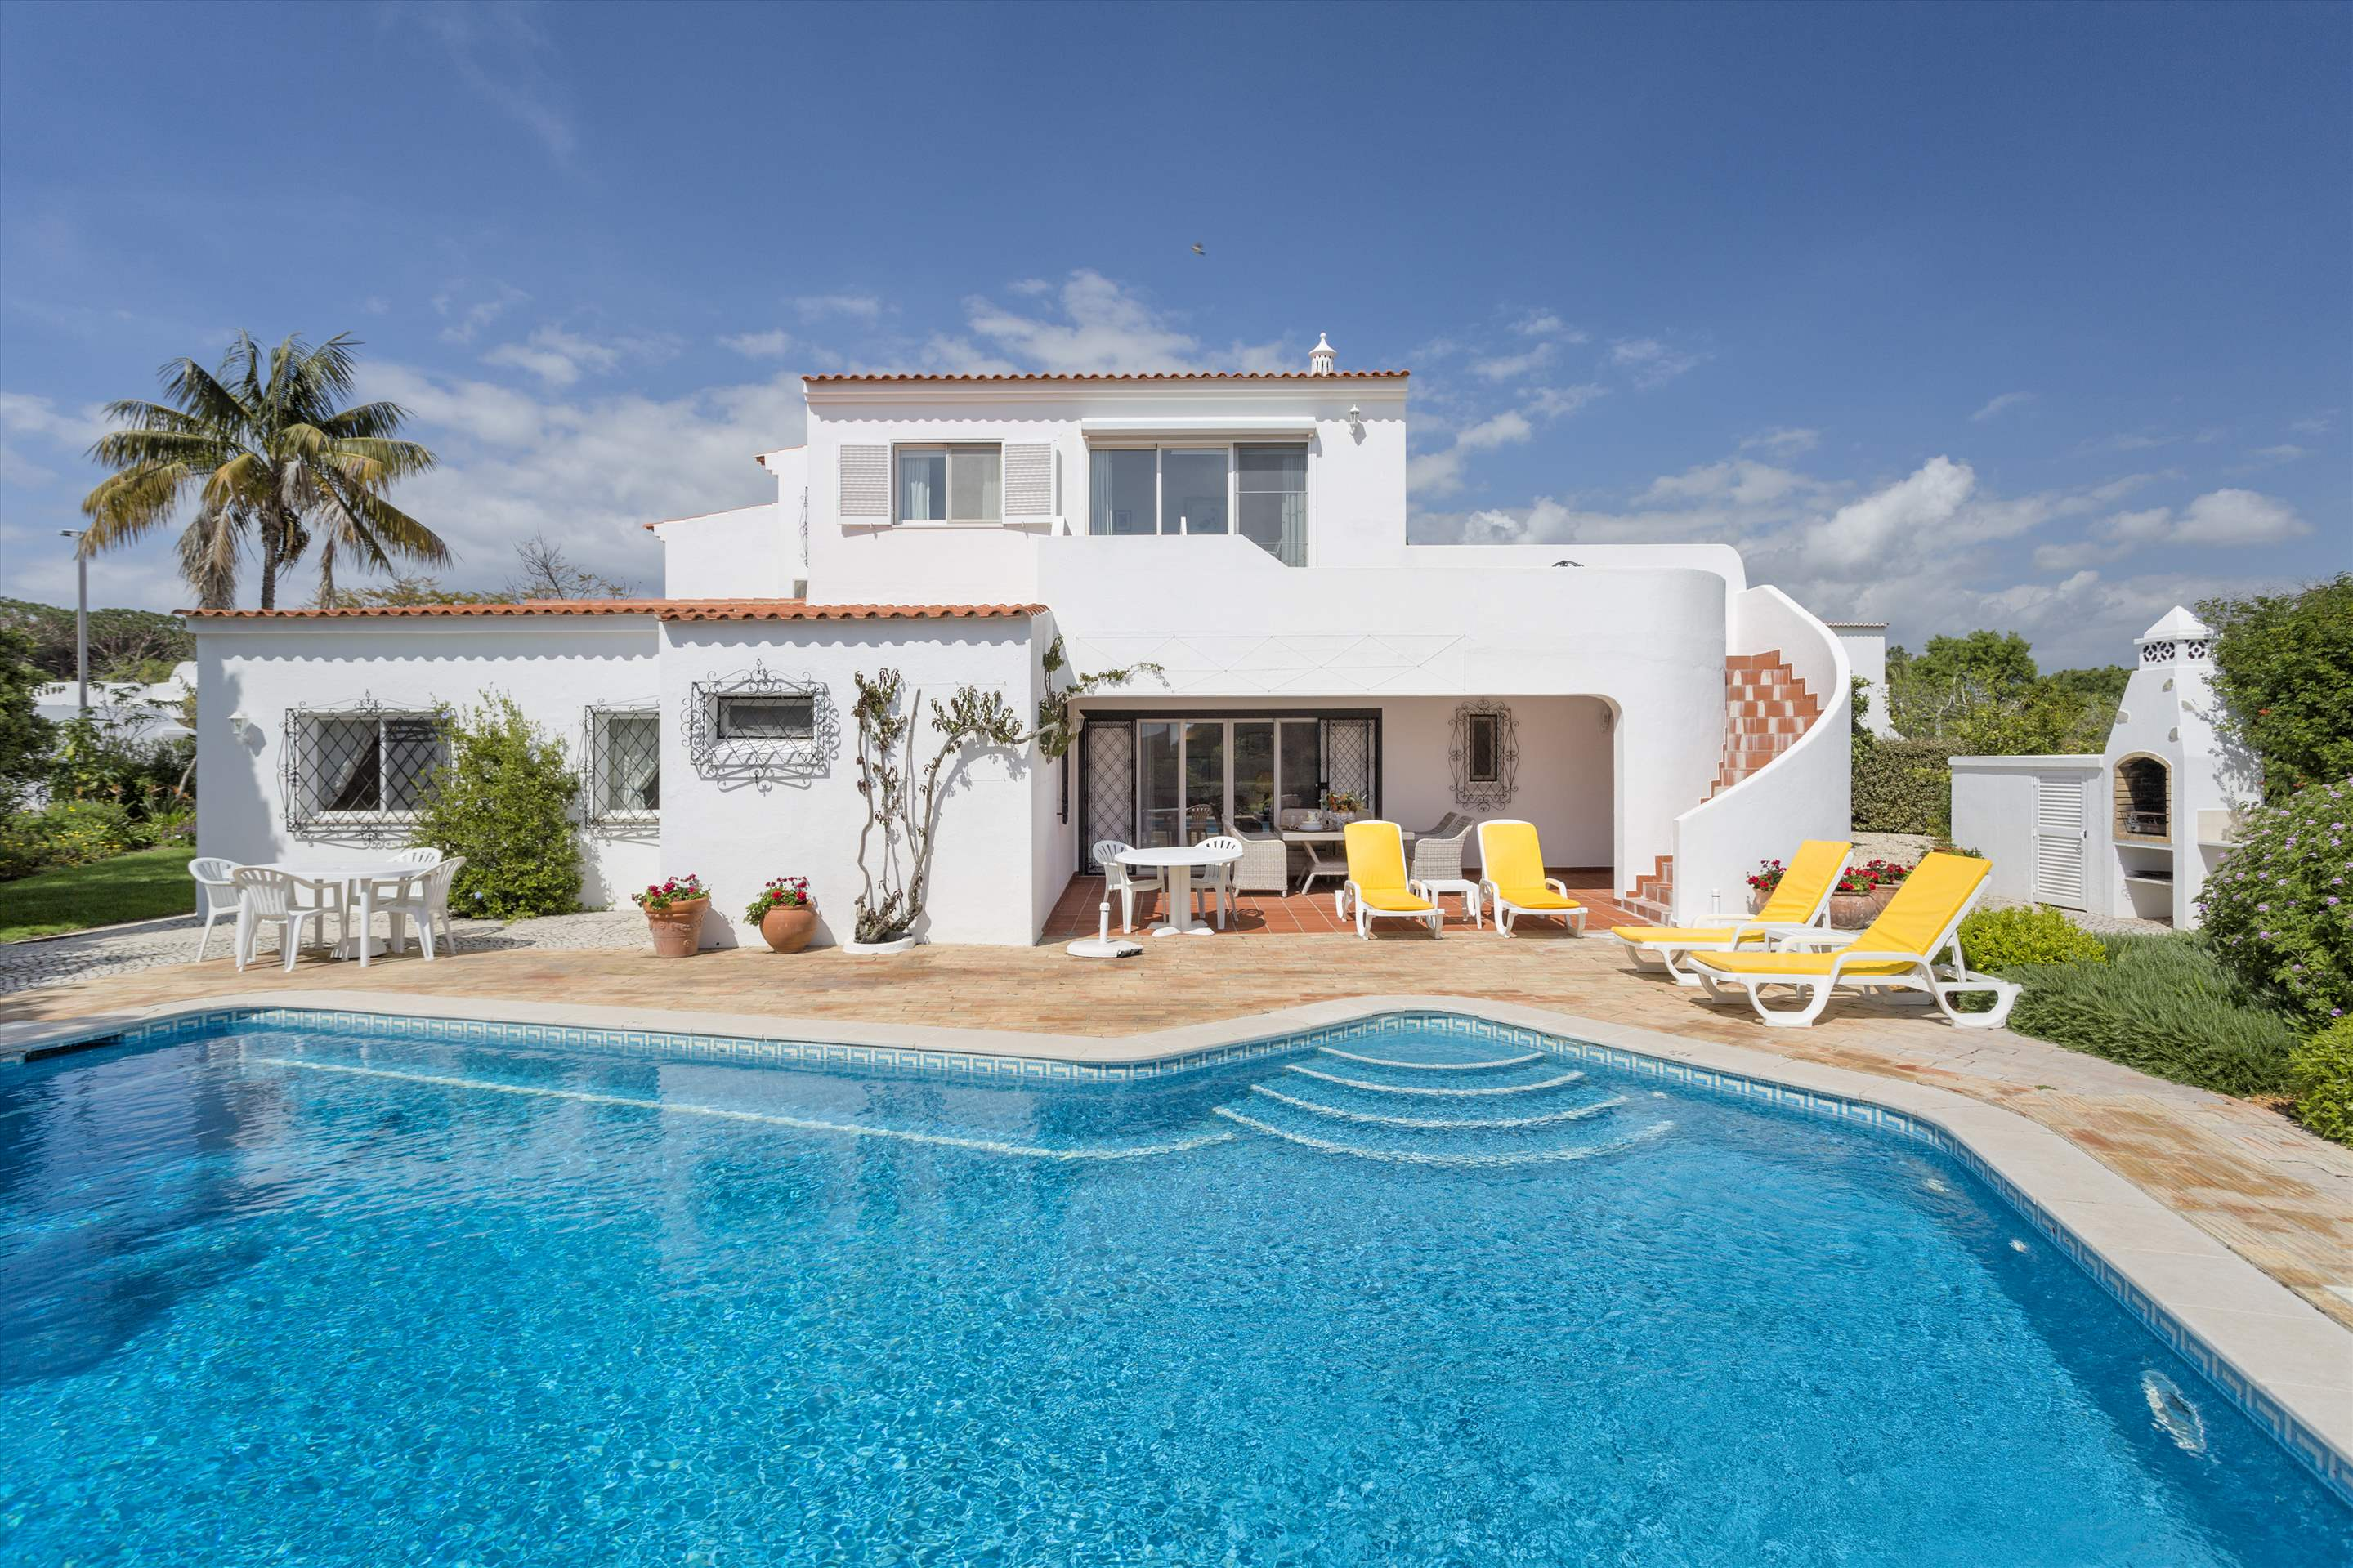 Villa Palmeira, 3 bedroom villa in Vale do Lobo, Algarve